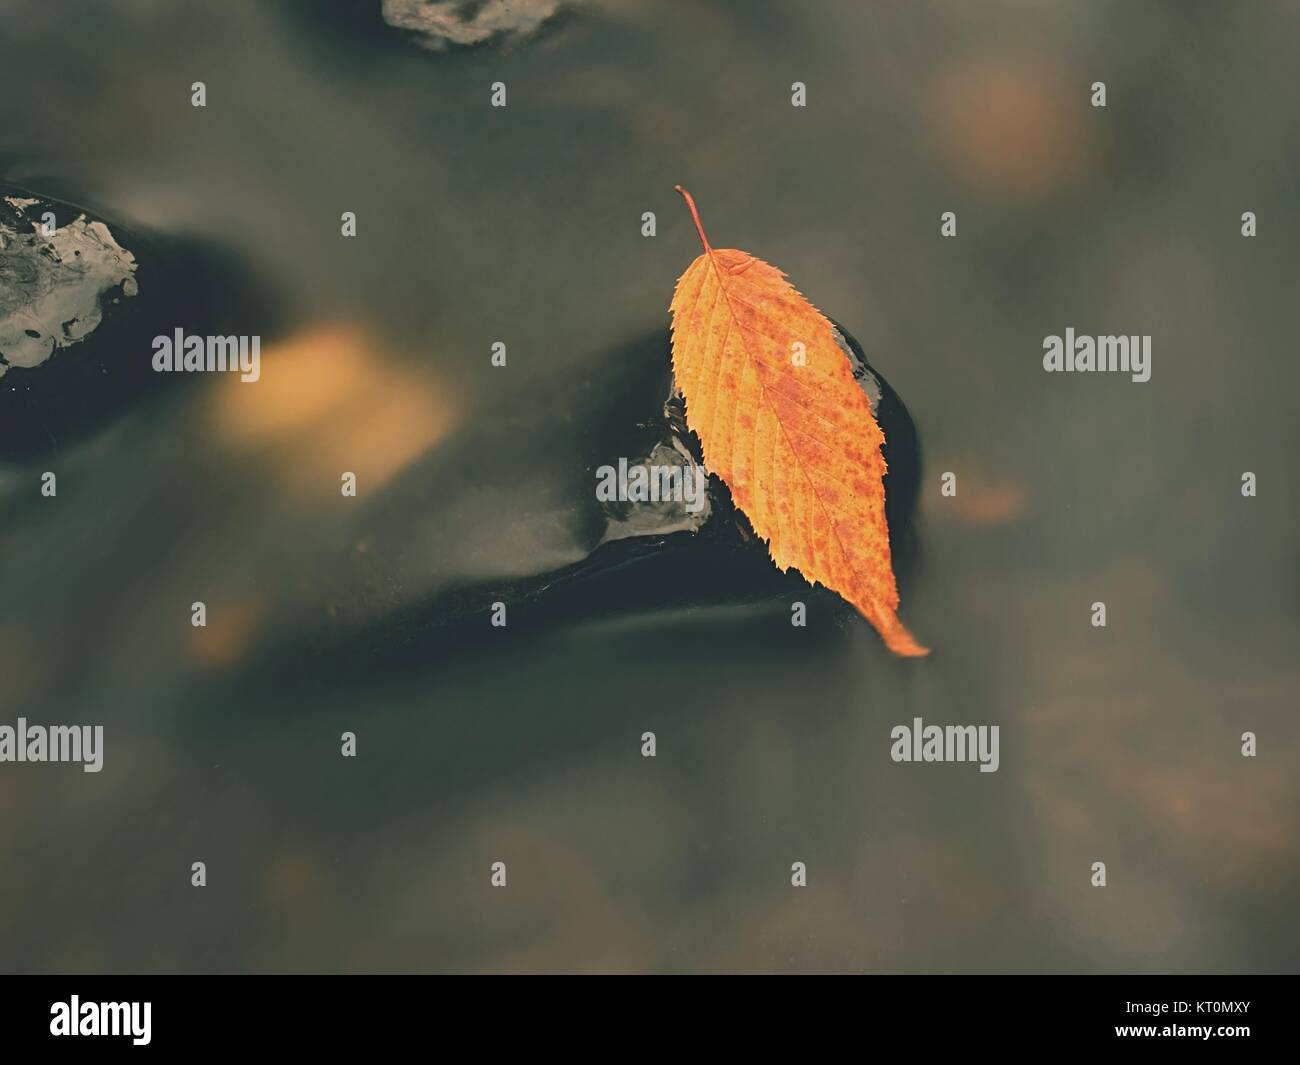 Yellow orange  rotten old beech  leaf on basalt stone in cold blurred water of mountain river, first leaf of coming - Stock Image